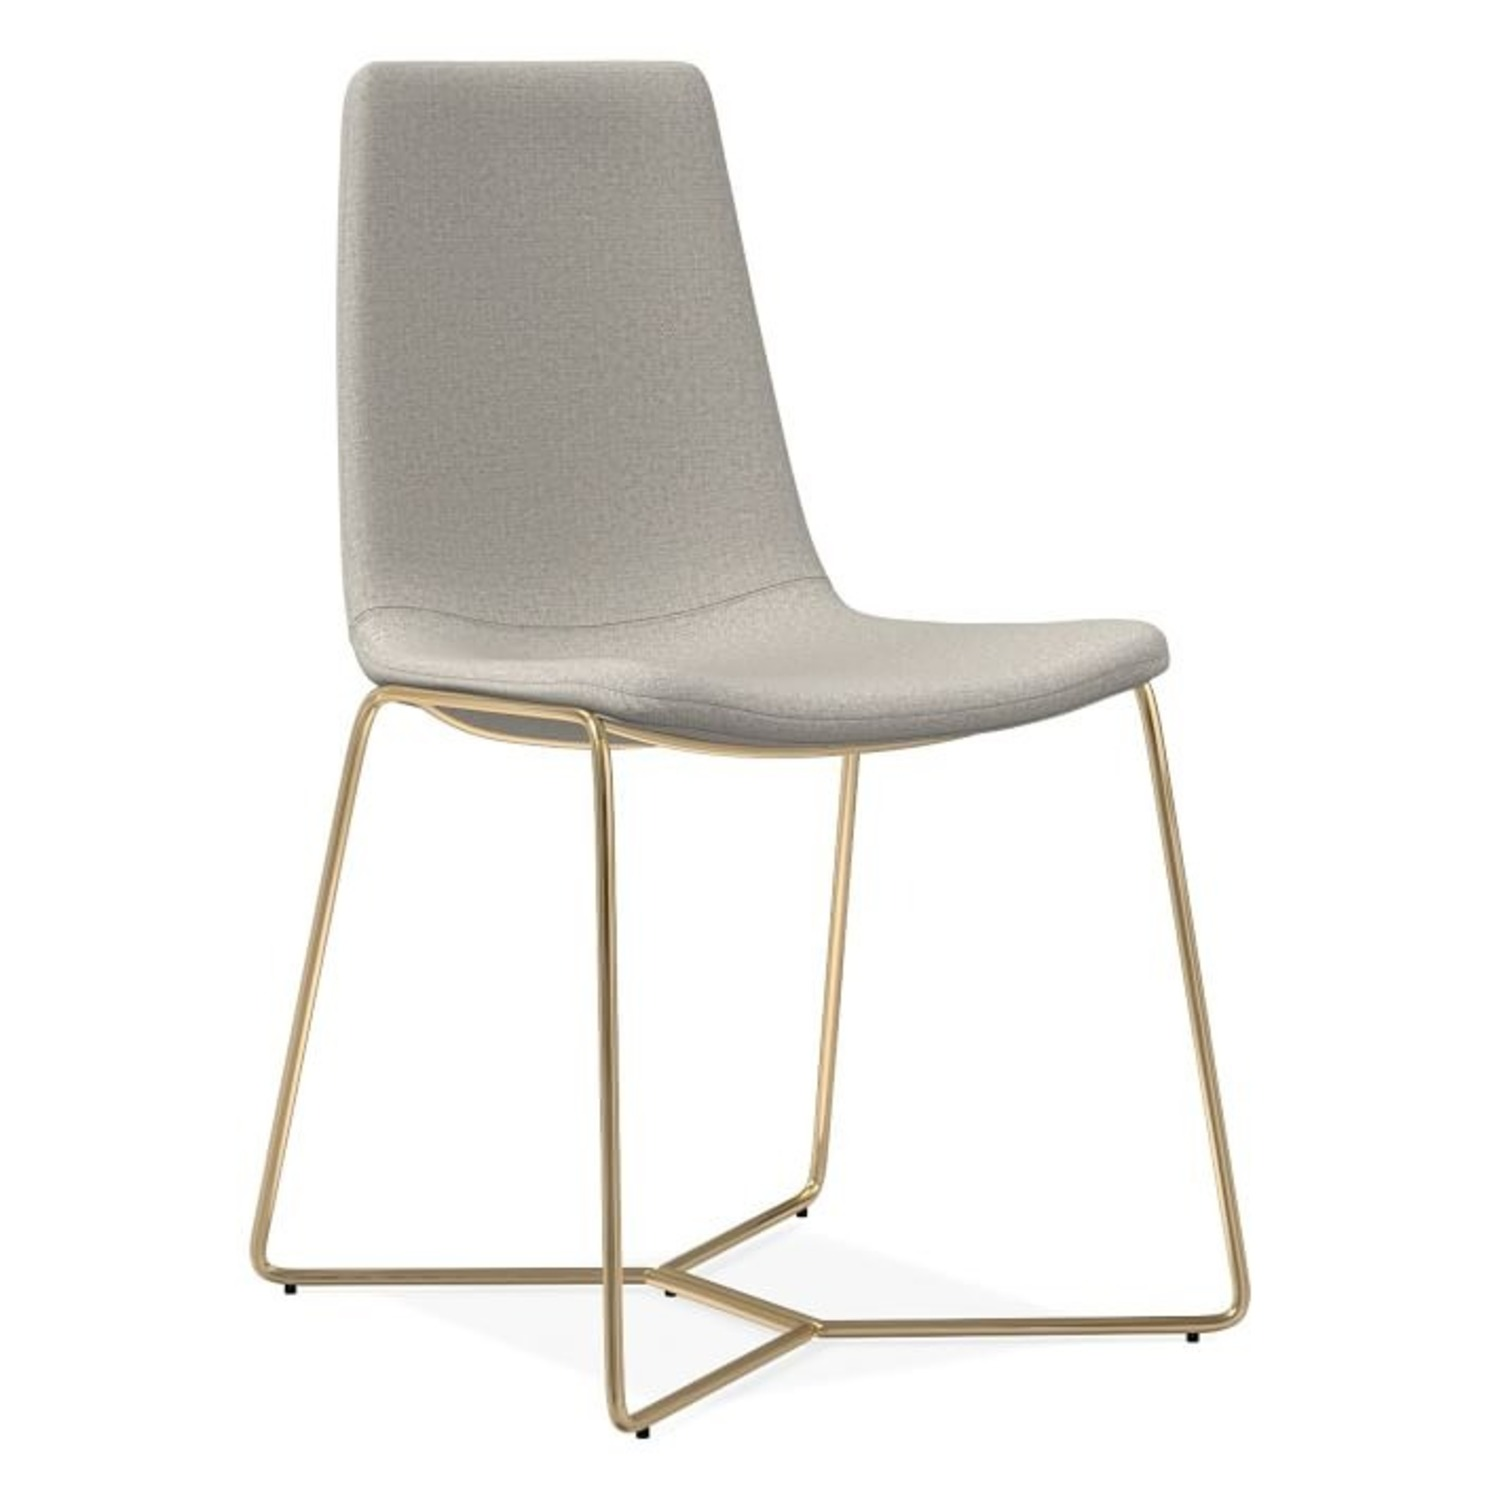 West Elm Slope Dining Chair - image-1